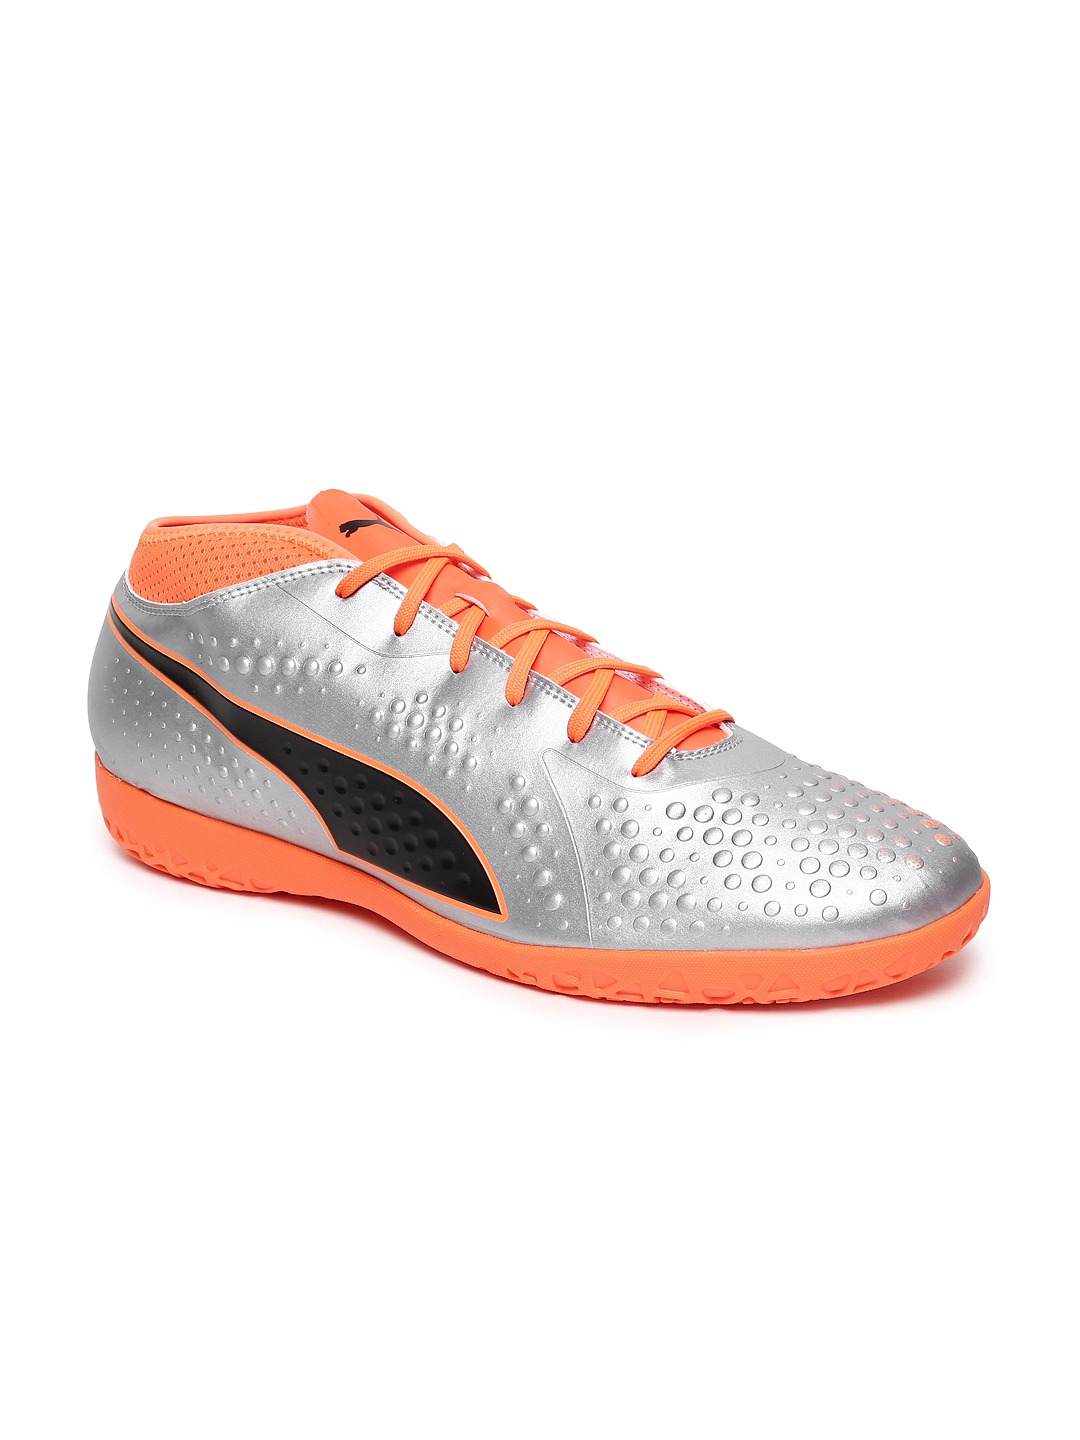 Buy Puma Men Silver Toned Solid ONE 4 Syn IT Football Shoes - Sports ... 98910eb6d